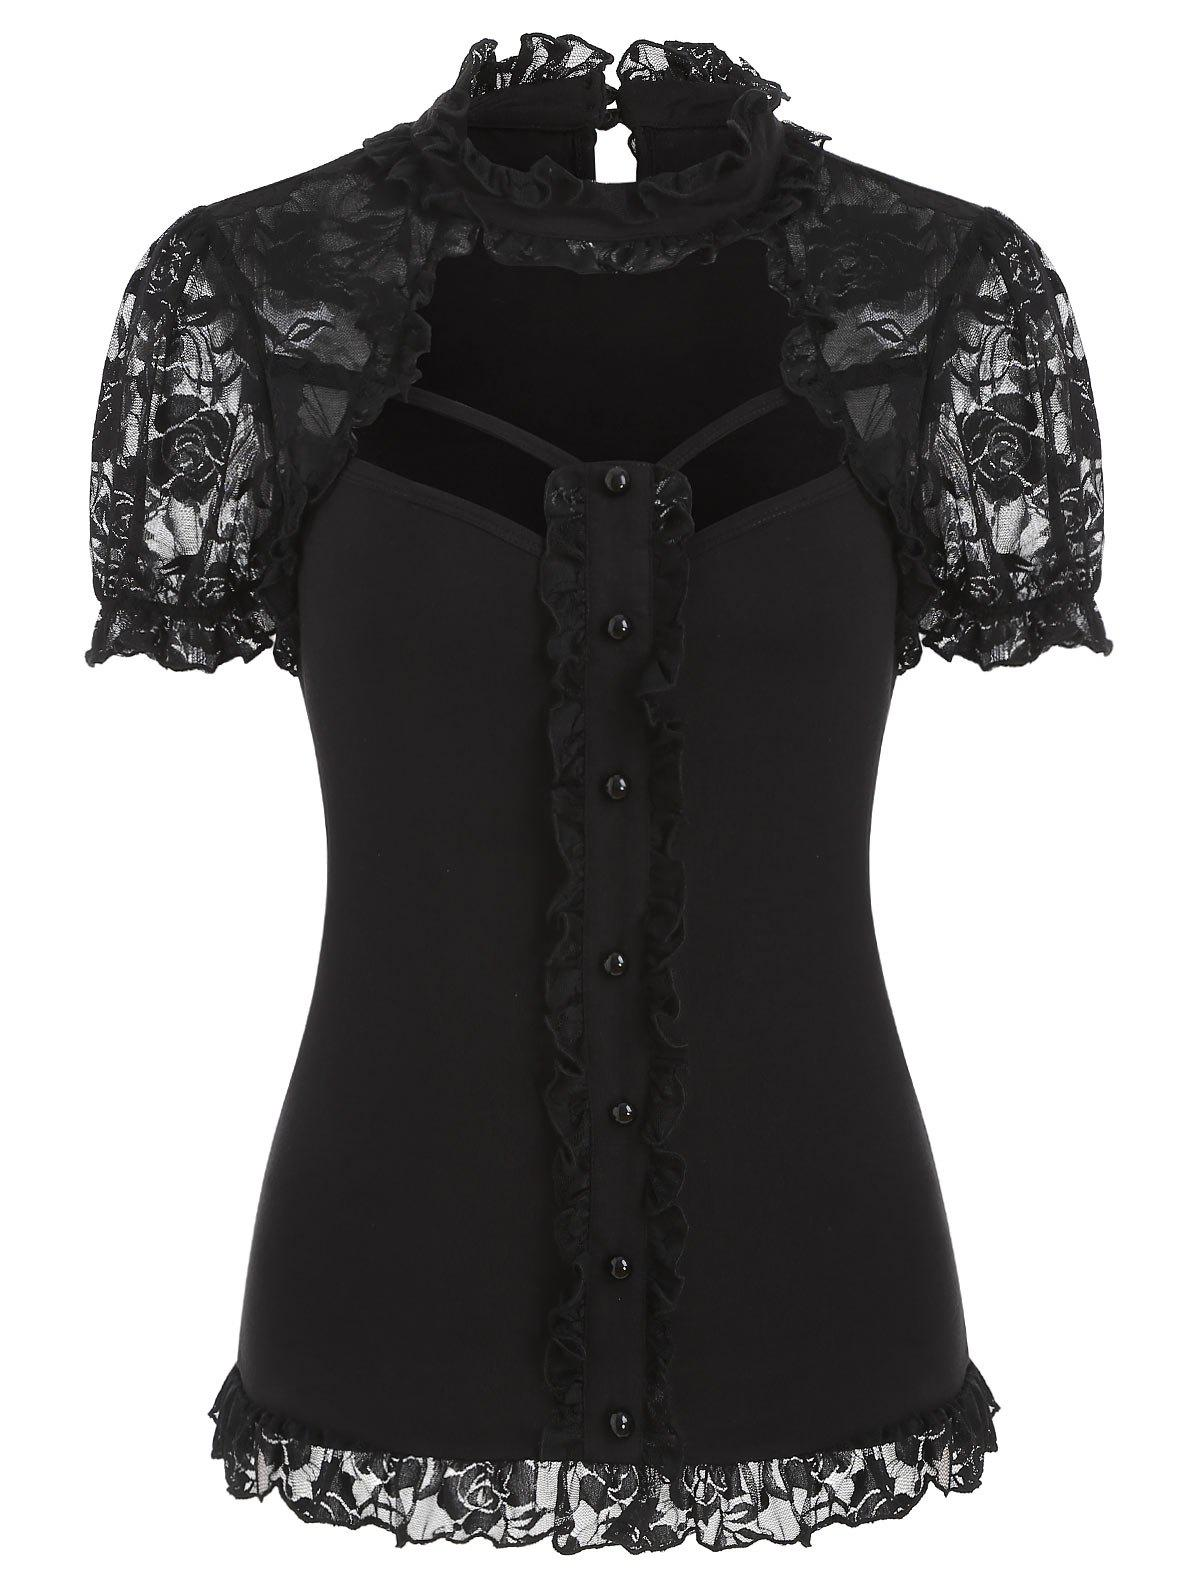 Shops Cut Out Lace Insert Button Ruffle Gothic T-shirt